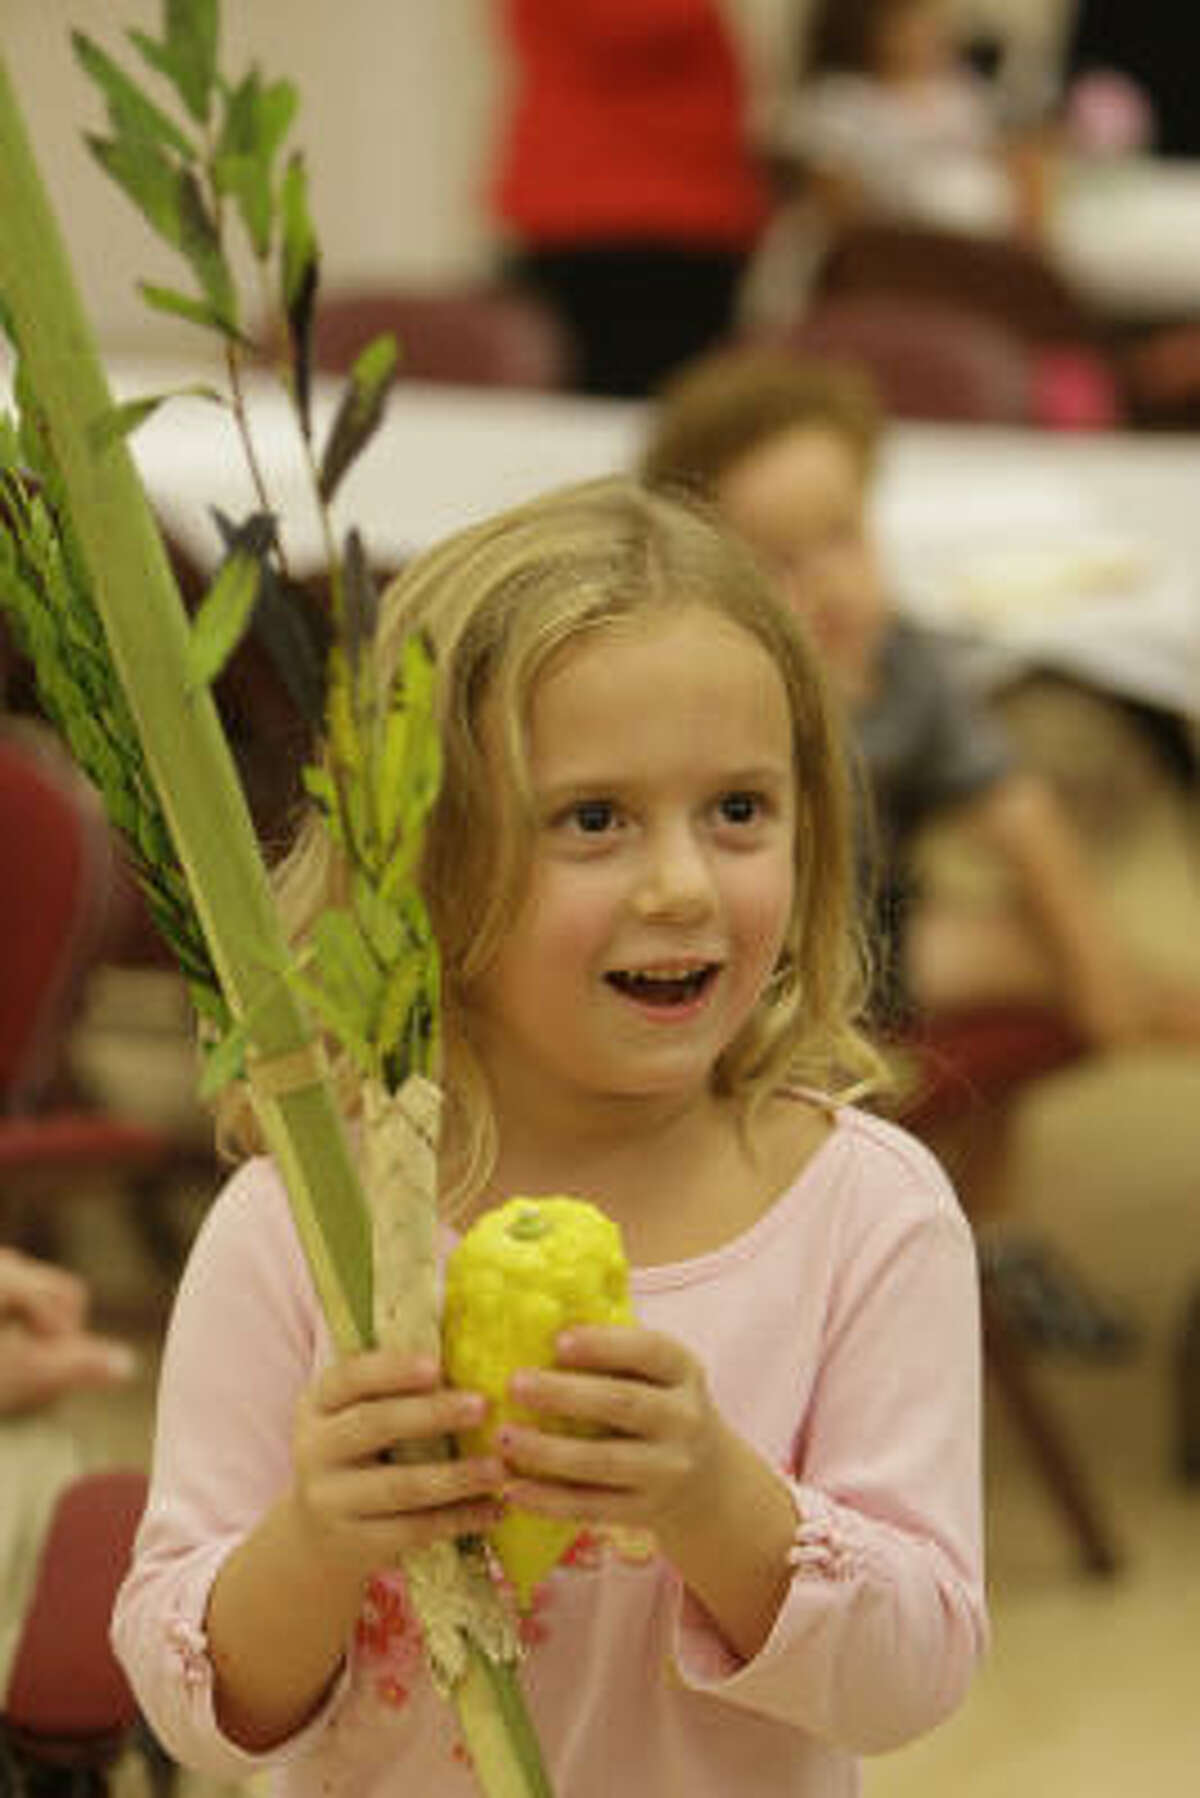 Riley Evans, 5, performs the shaking of the lulav during a Sukkot program for the Bertha Alyce Center preschoolers at the Jewish Community Center. It is made up branches of palm, mrytle and willow along with an etrog, a citrus fruit similar to a lemon native to Israela. The blessing and the shaking of the lulav and etrog, commonly symbolize the bringing together of all communities, said Jonathan Fass, co-director of the center for Jewish Living and Learning at the JCC.